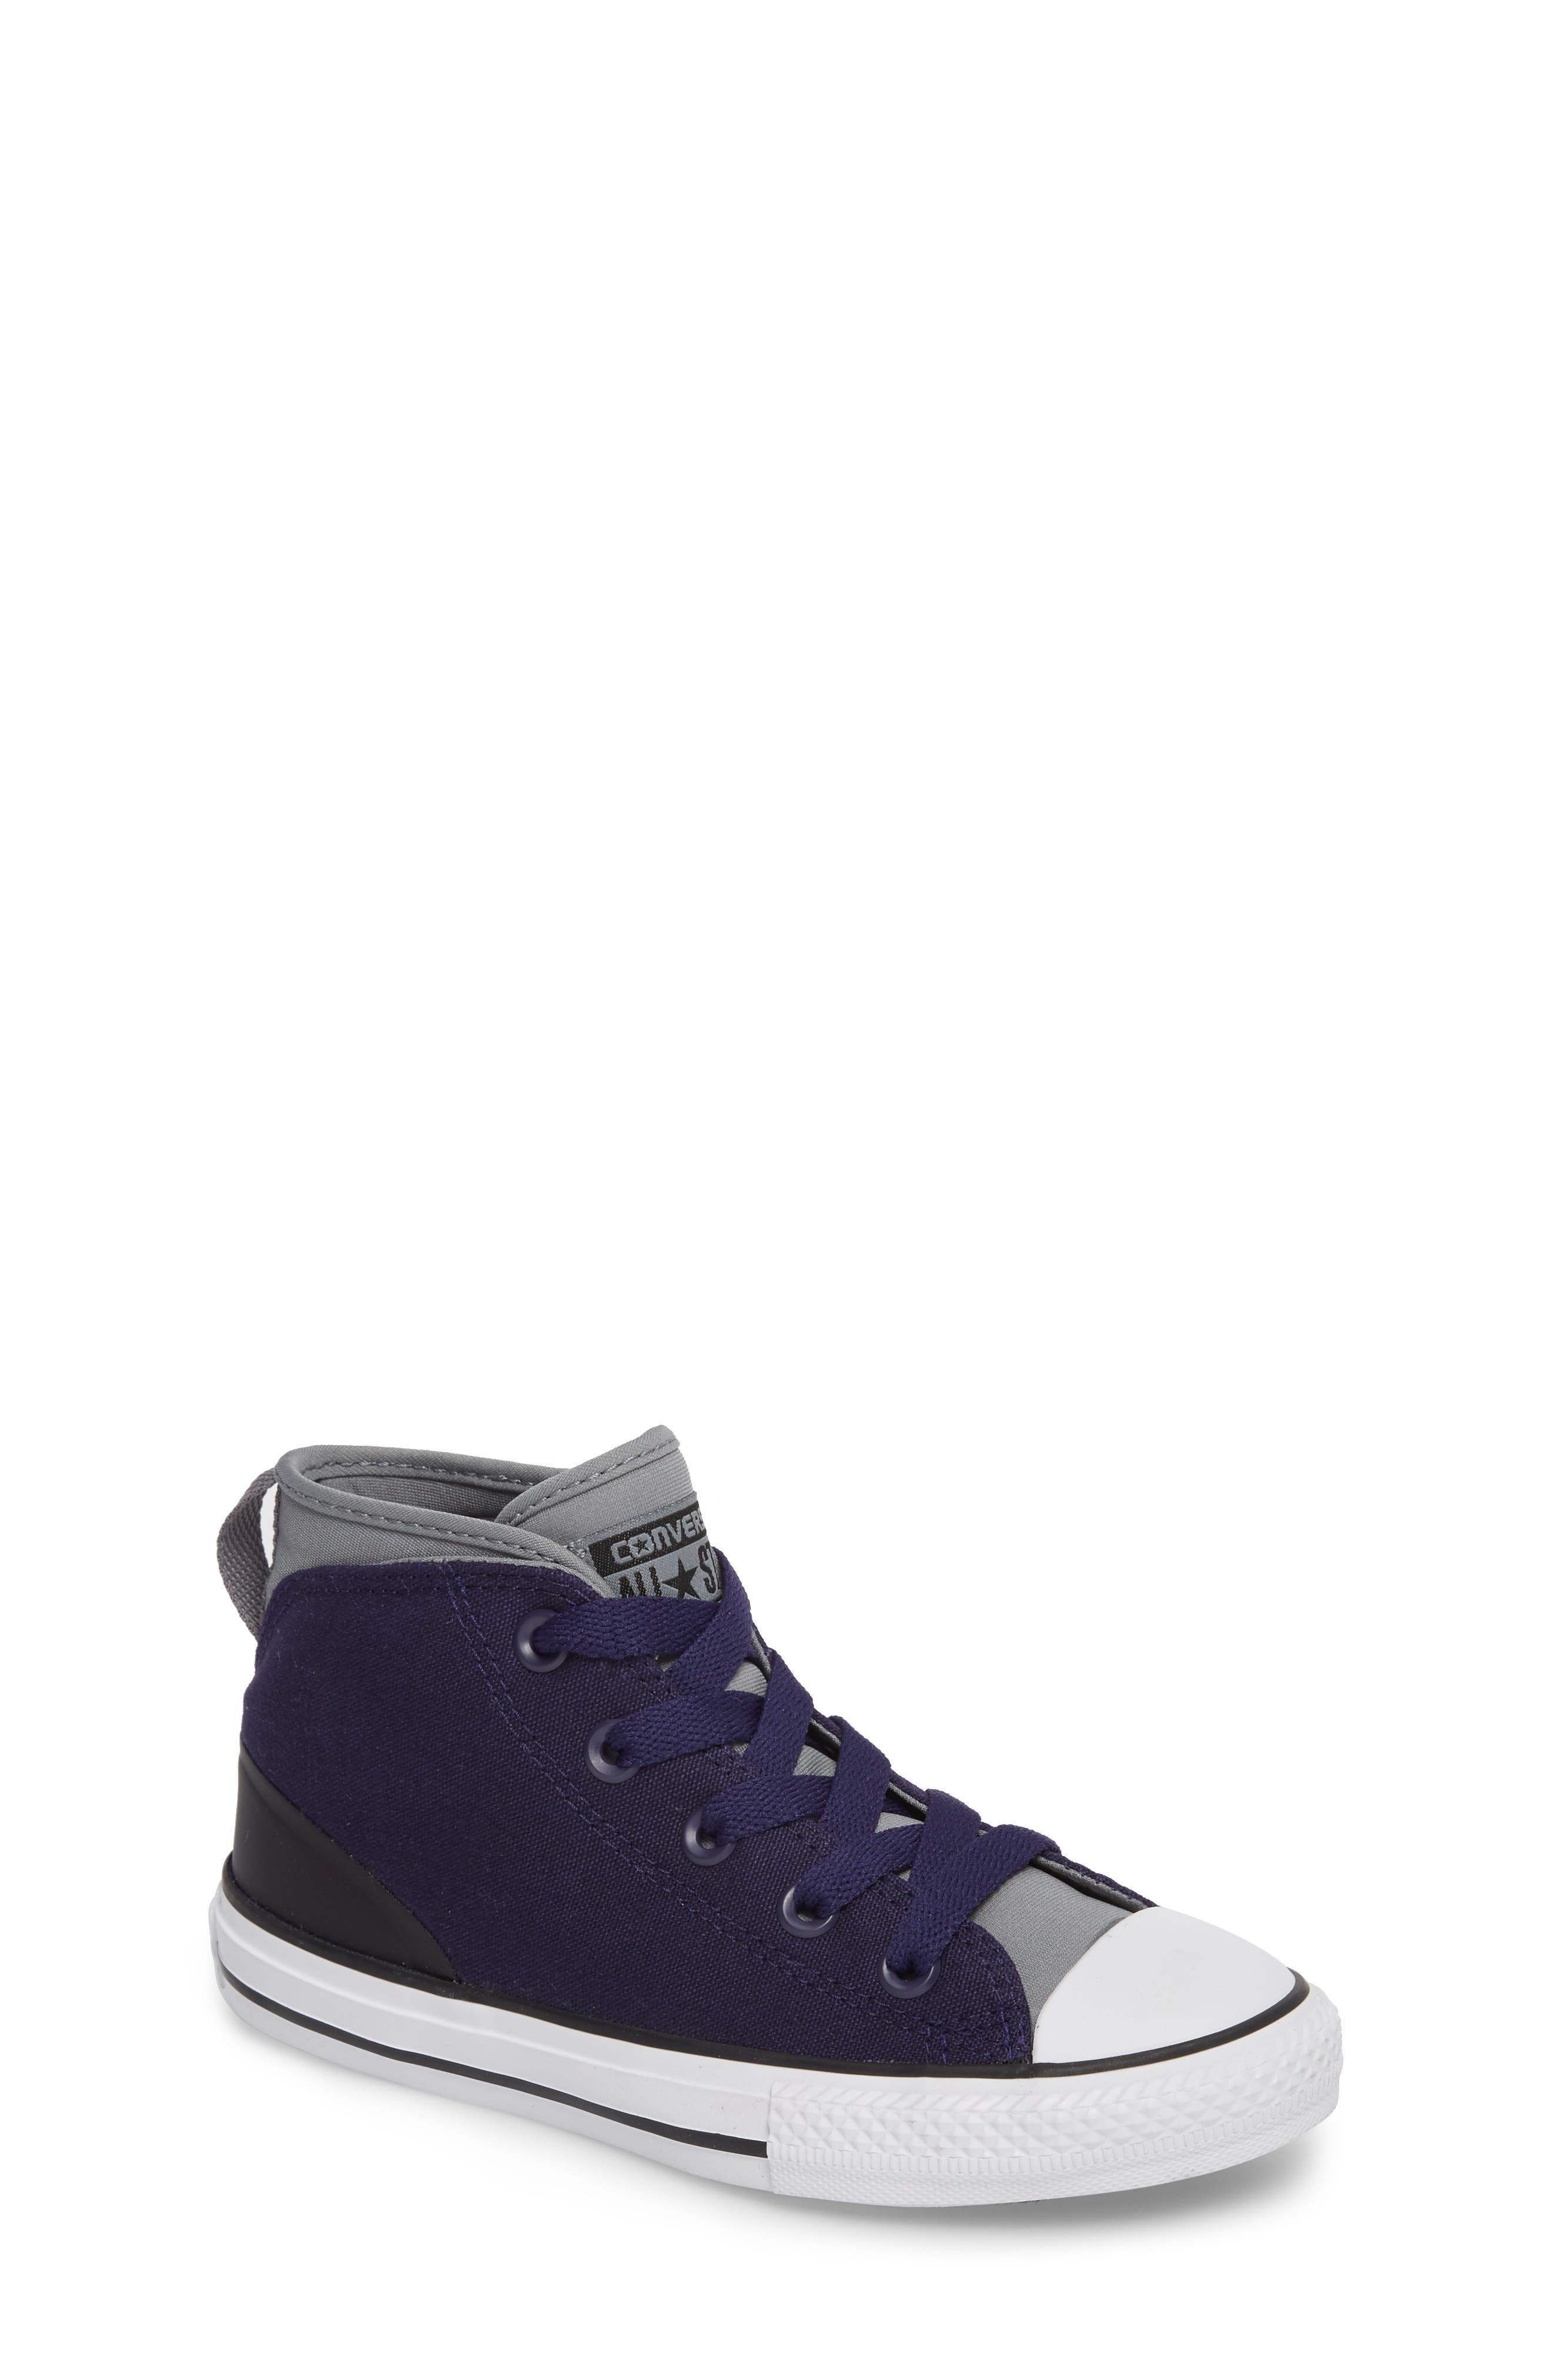 Chuck Taylor<sup>®</sup> All Star<sup>®</sup> Syde Street High Top Sneaker,                             Main thumbnail 1, color,